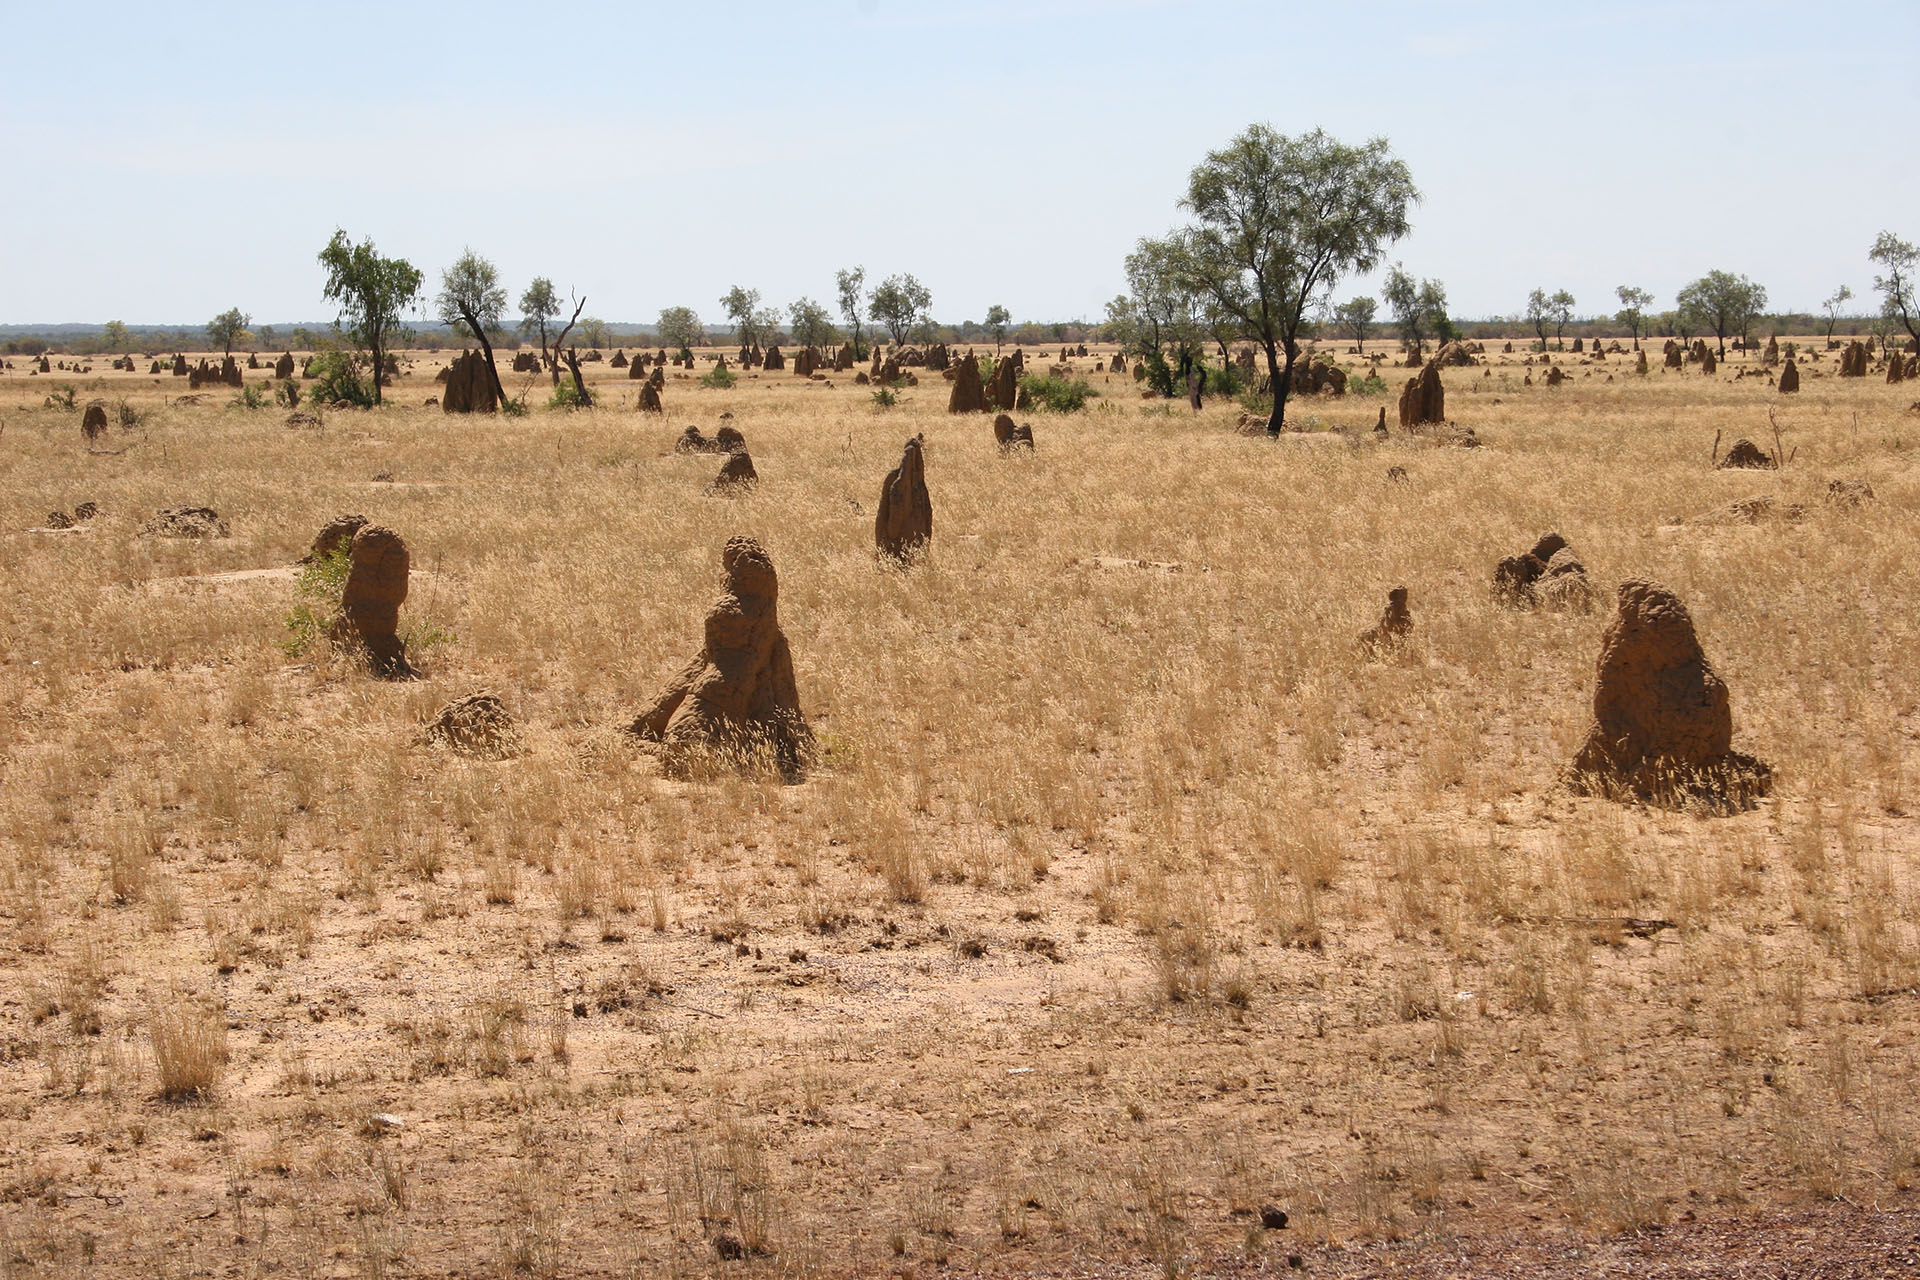 Termite mounds galore.